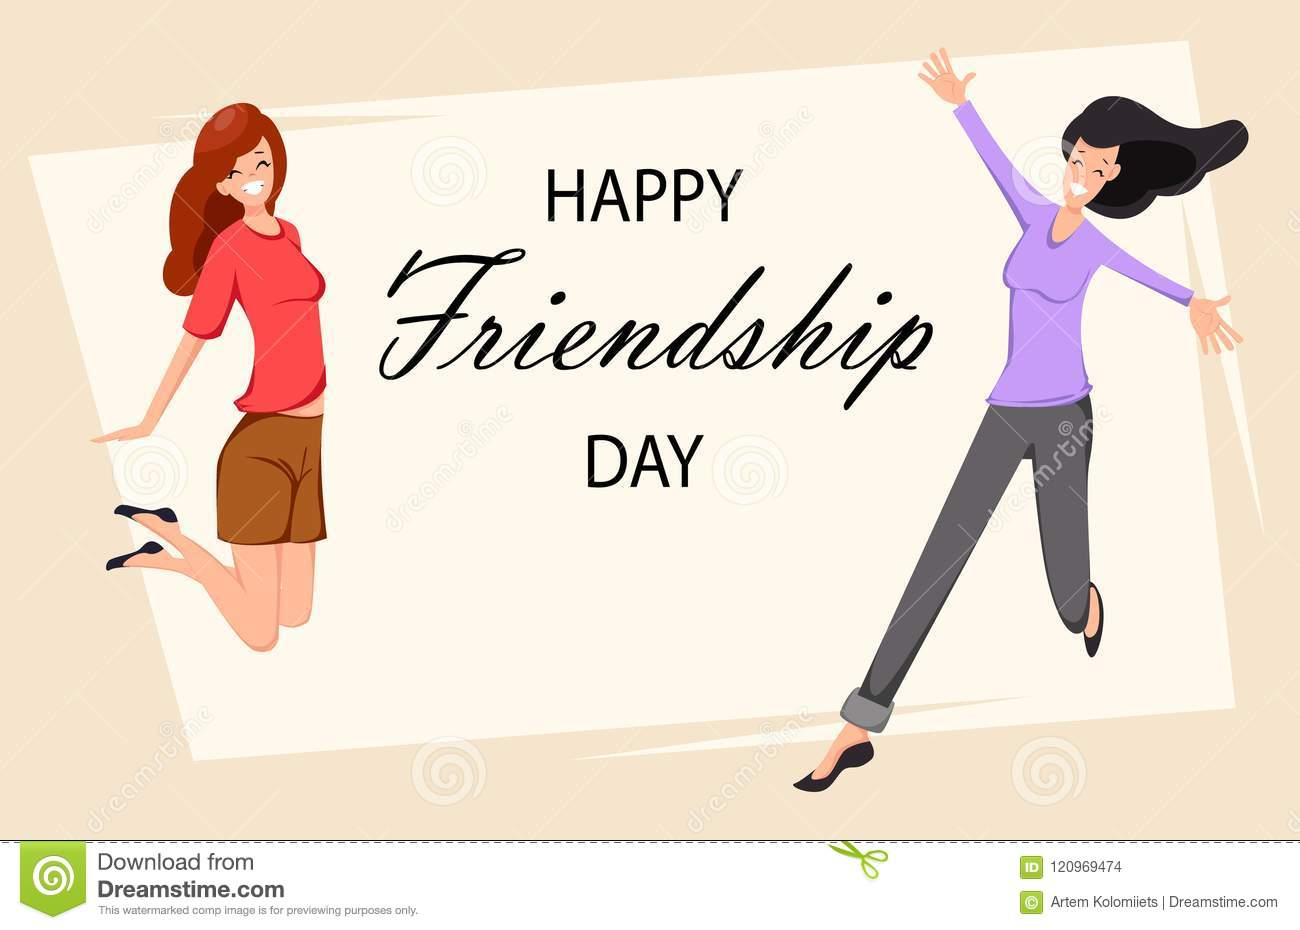 Happy Friendship Day Greeting Card Stock Vector Illustration Of Invitation Character 120969474